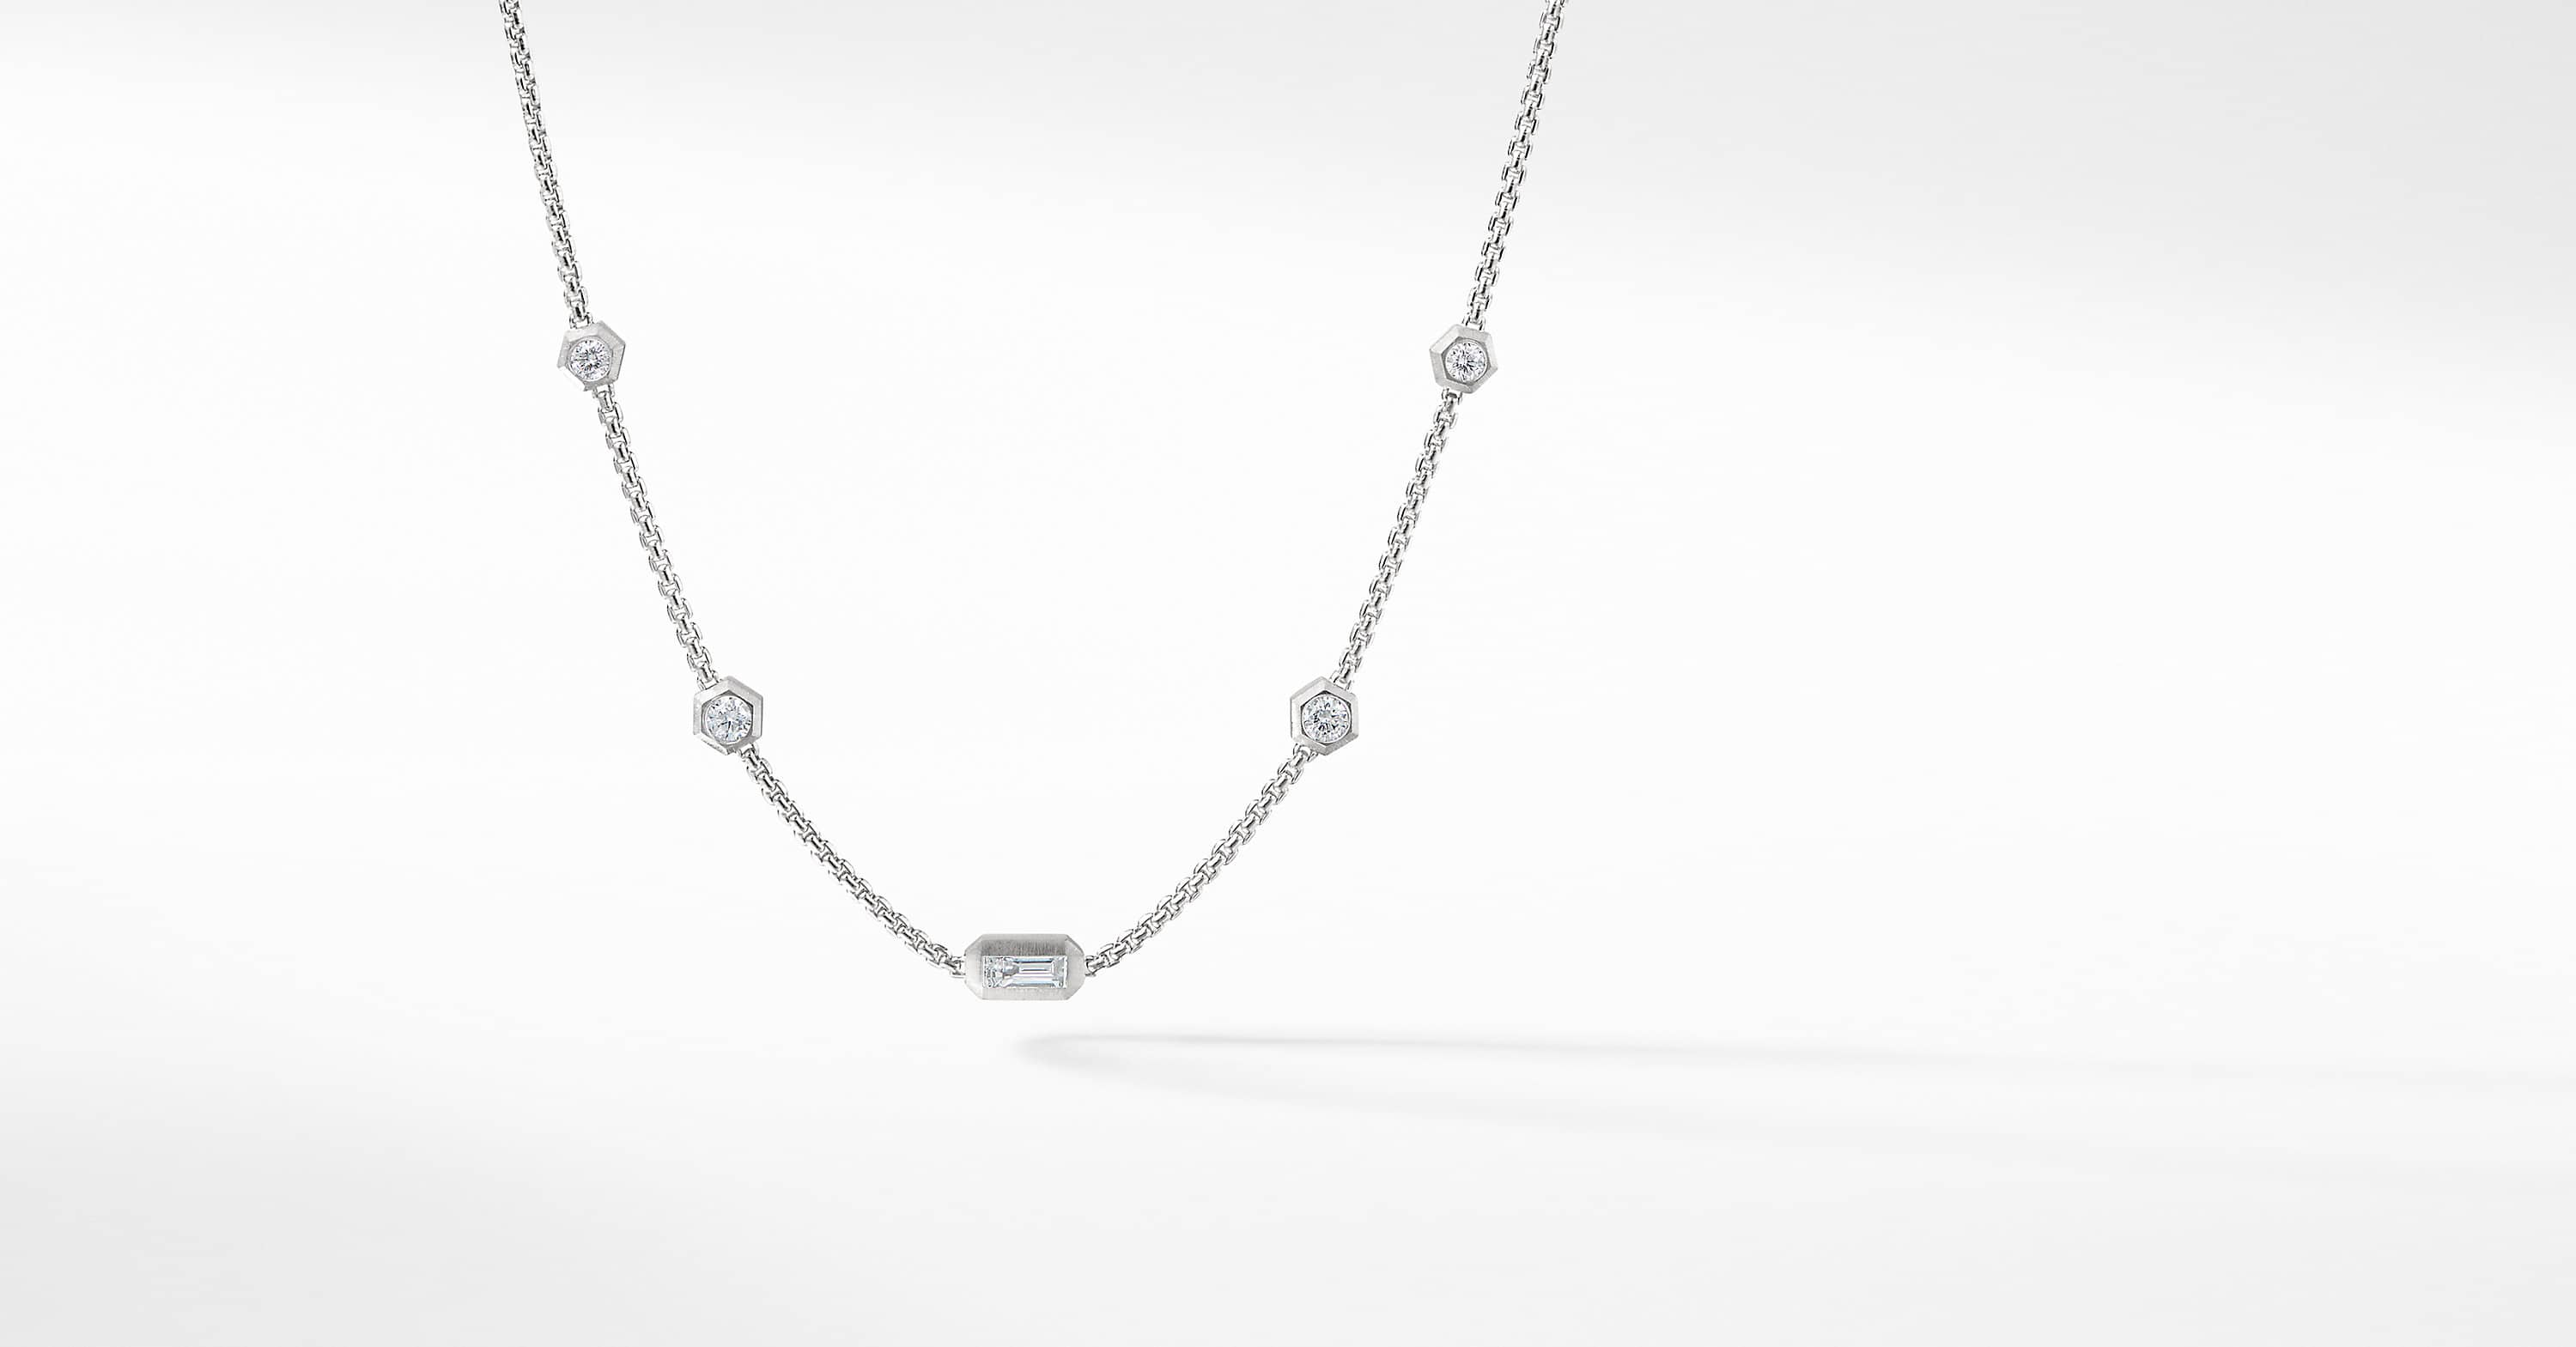 Novella Necklace with Diamonds in 18K White Gold